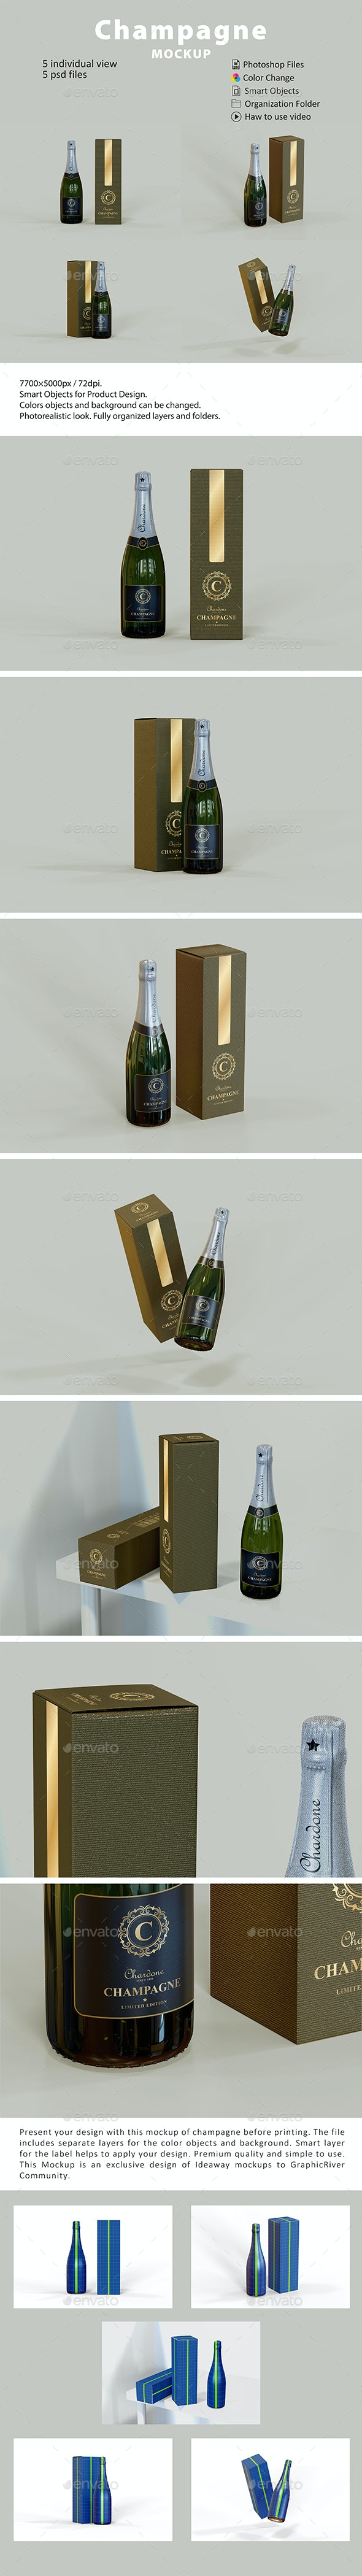 Champagne Packaging Mockup - Food and Drink Packaging